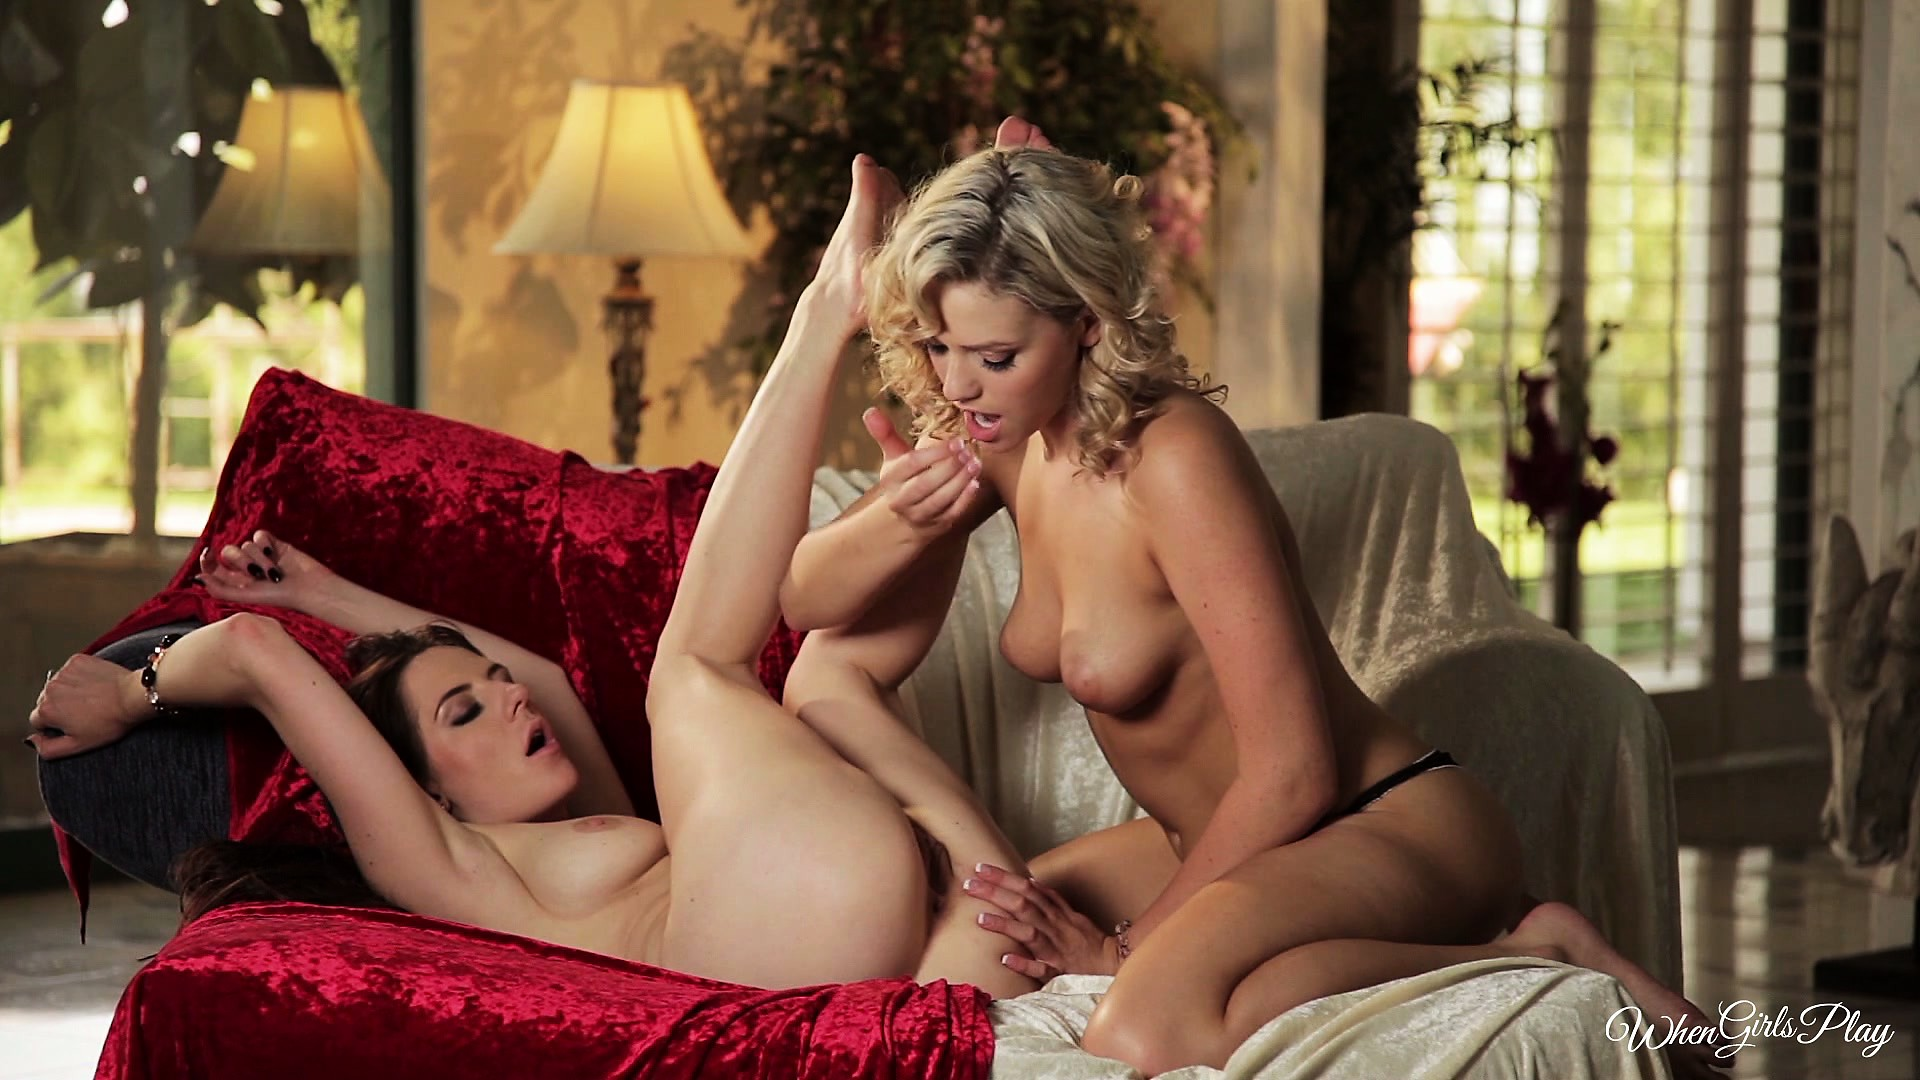 Porno Video of With One Hot Blonde And One Hot Brunette, This Lesbian Action Will Be Hot, For Sure